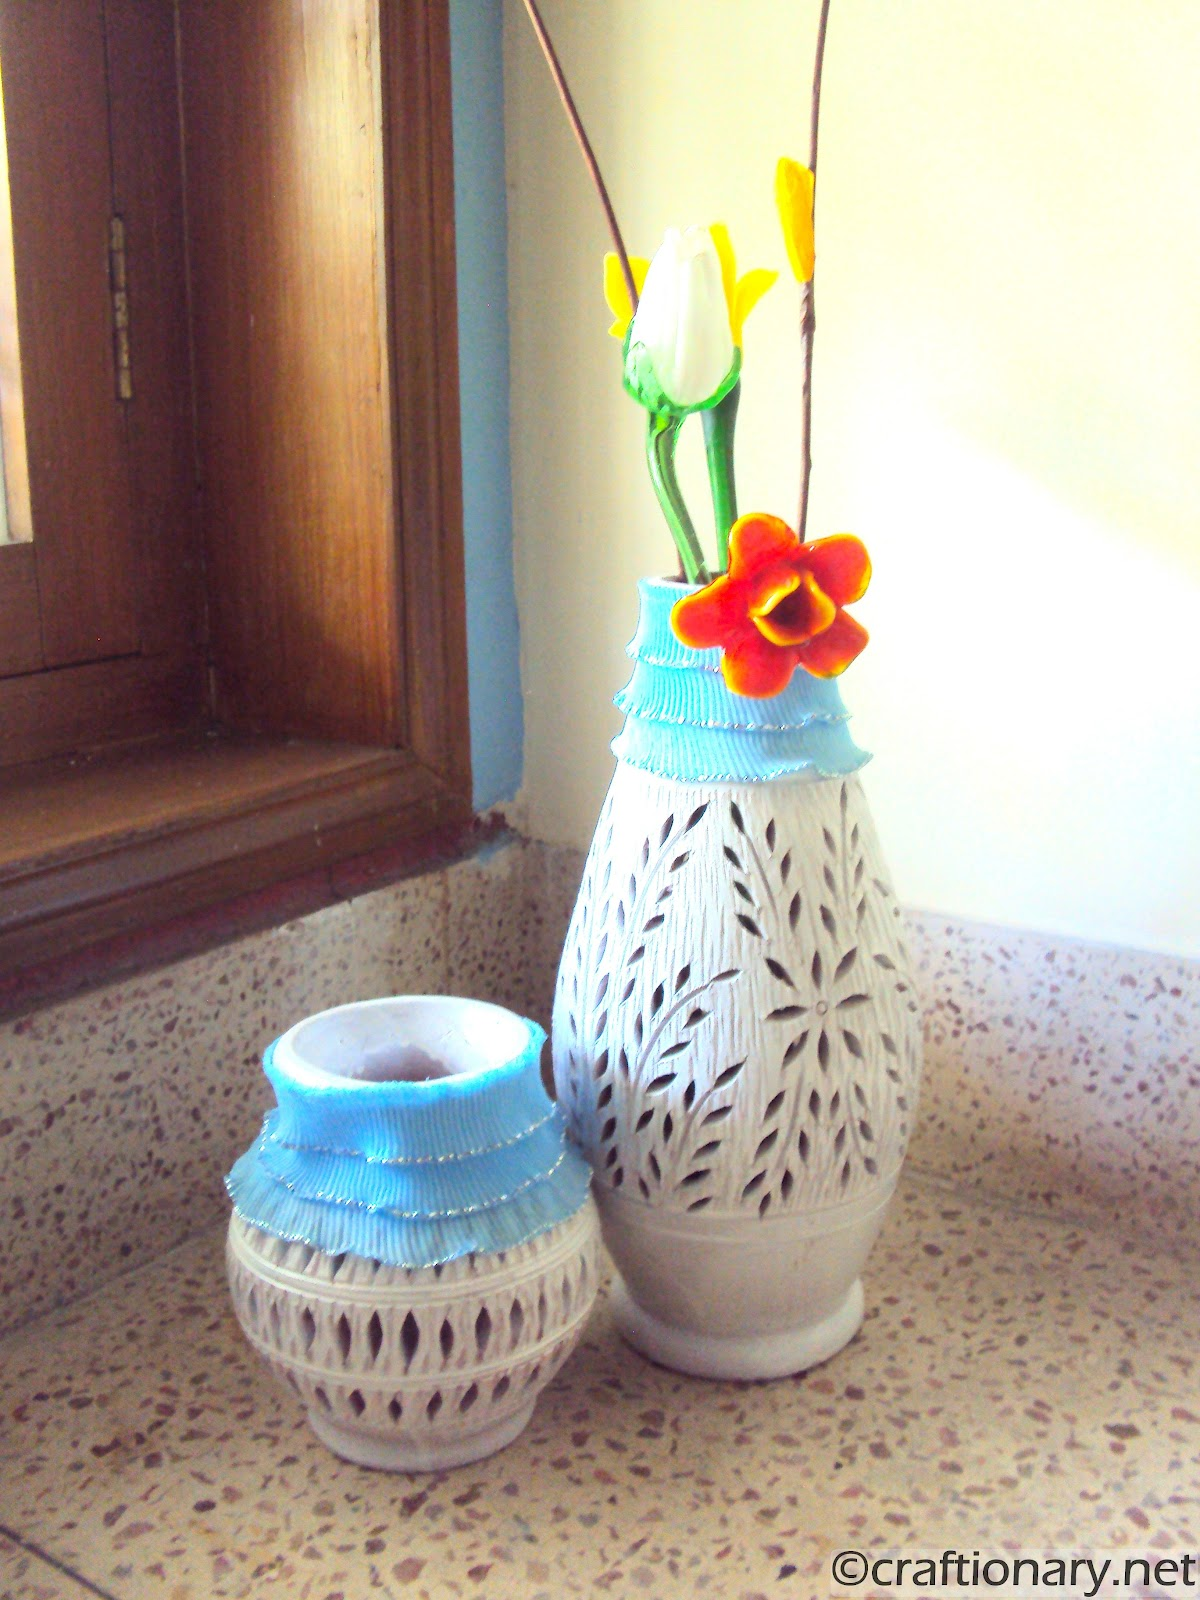 DIY Clay Pots (Decorating Home) - Craftionary